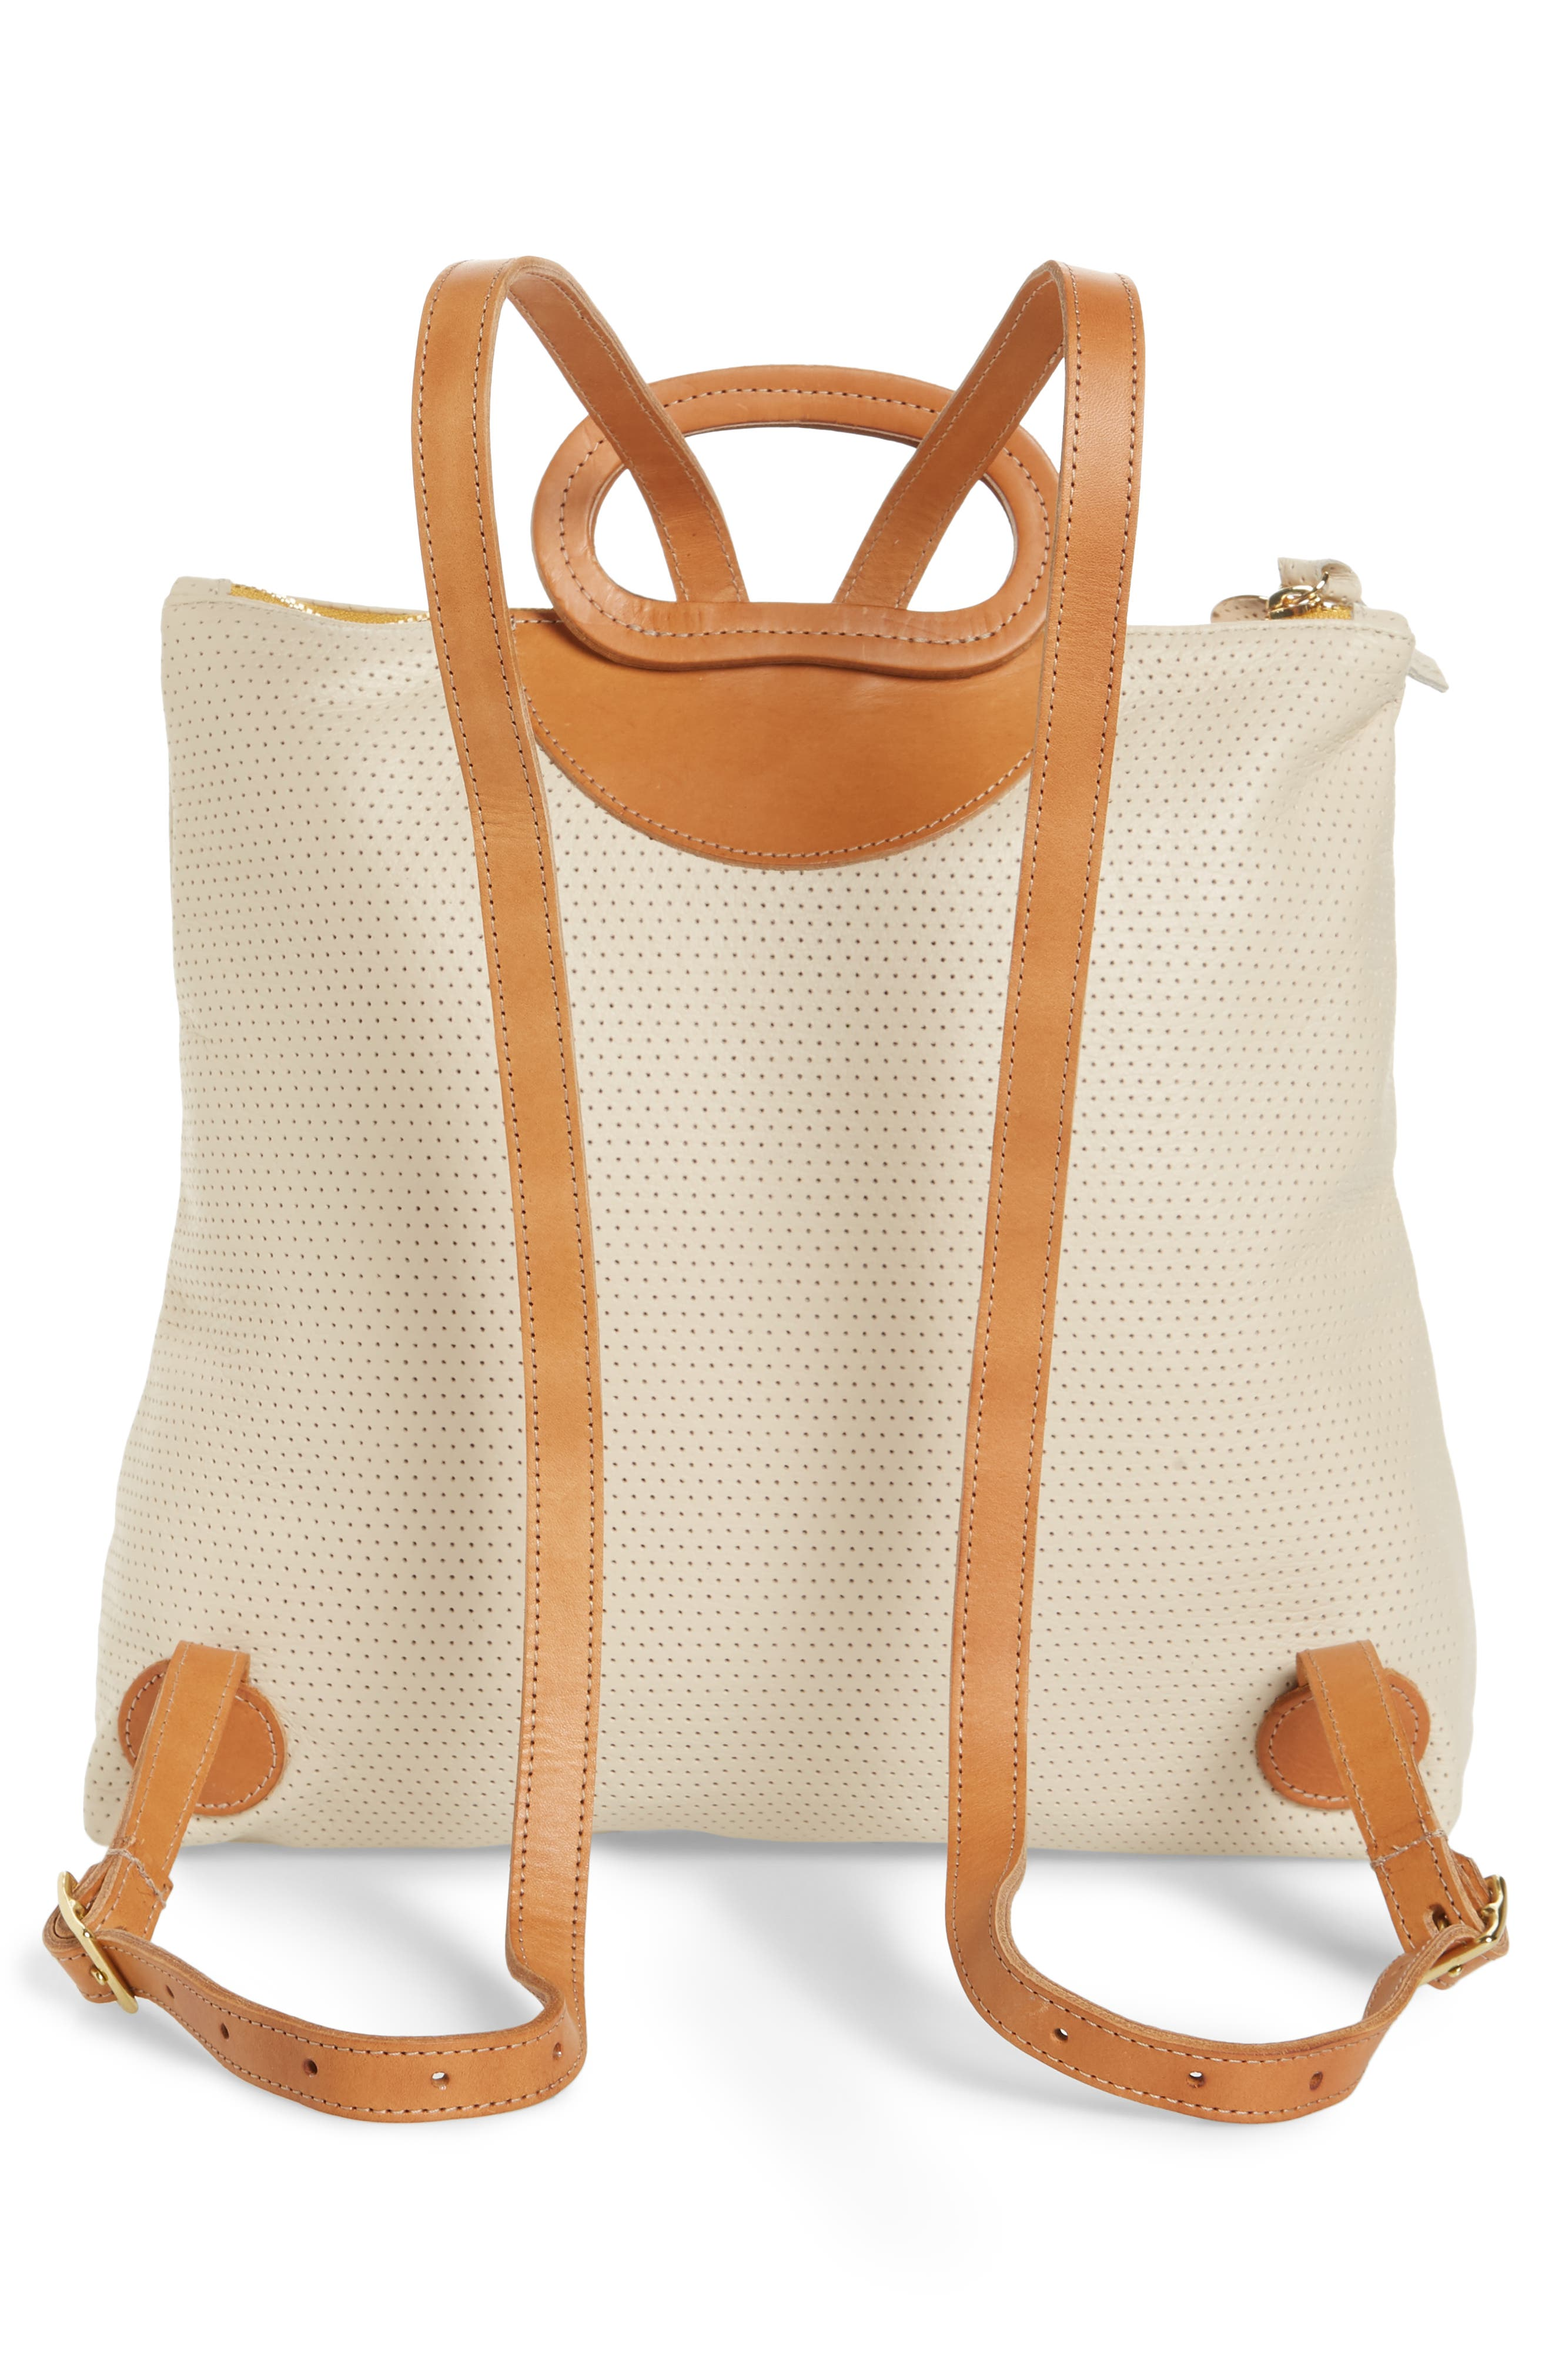 Marcelle Leather Backpack,                             Alternate thumbnail 3, color,                             900